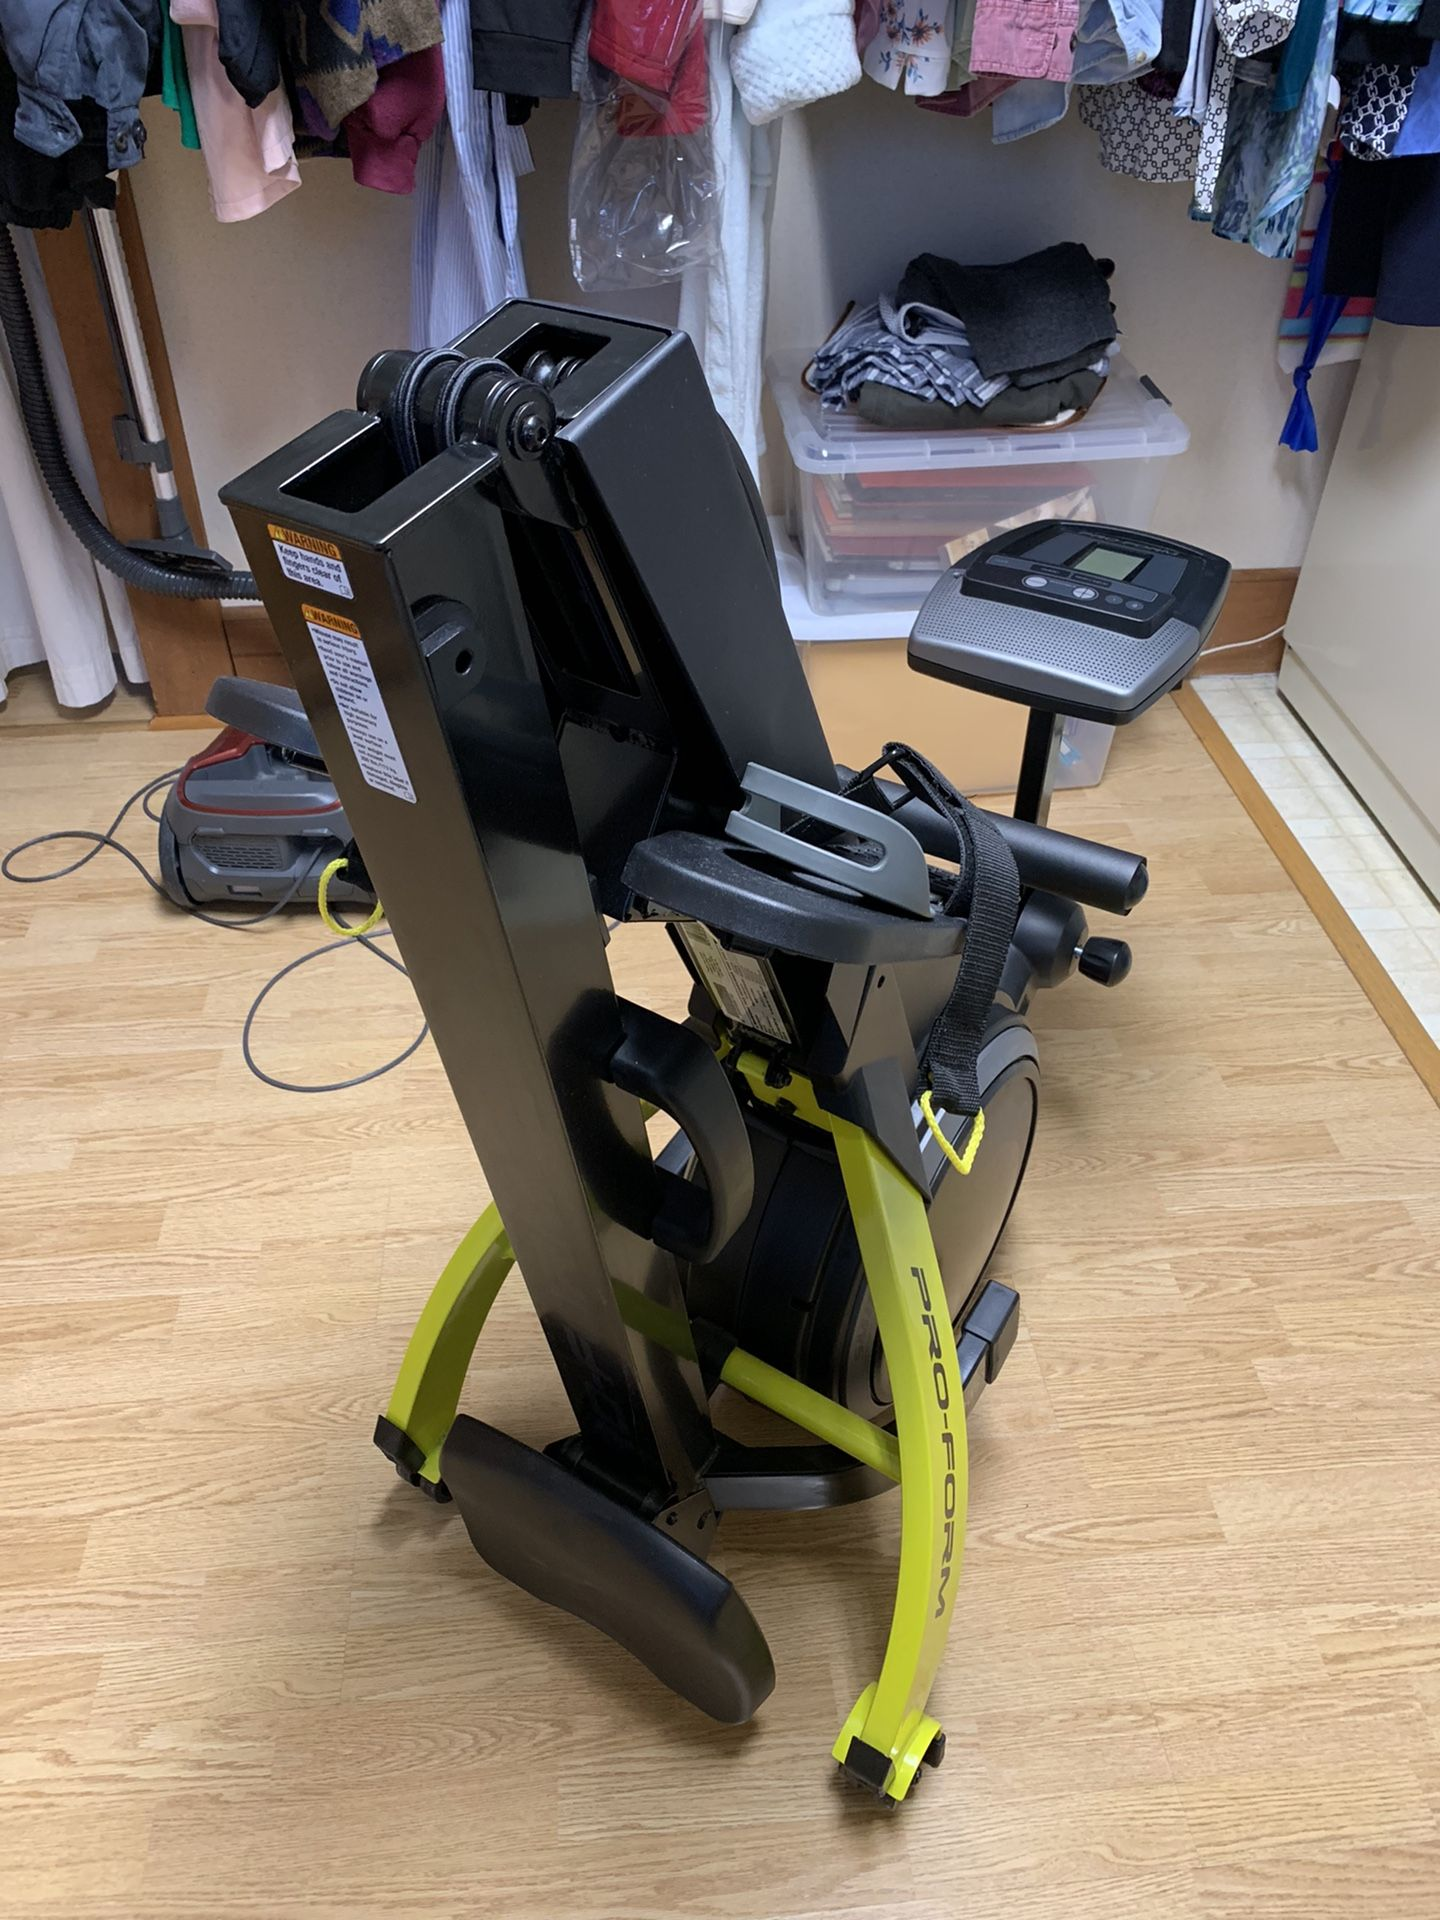 PRO-FORM Rowing Machine From Costco.